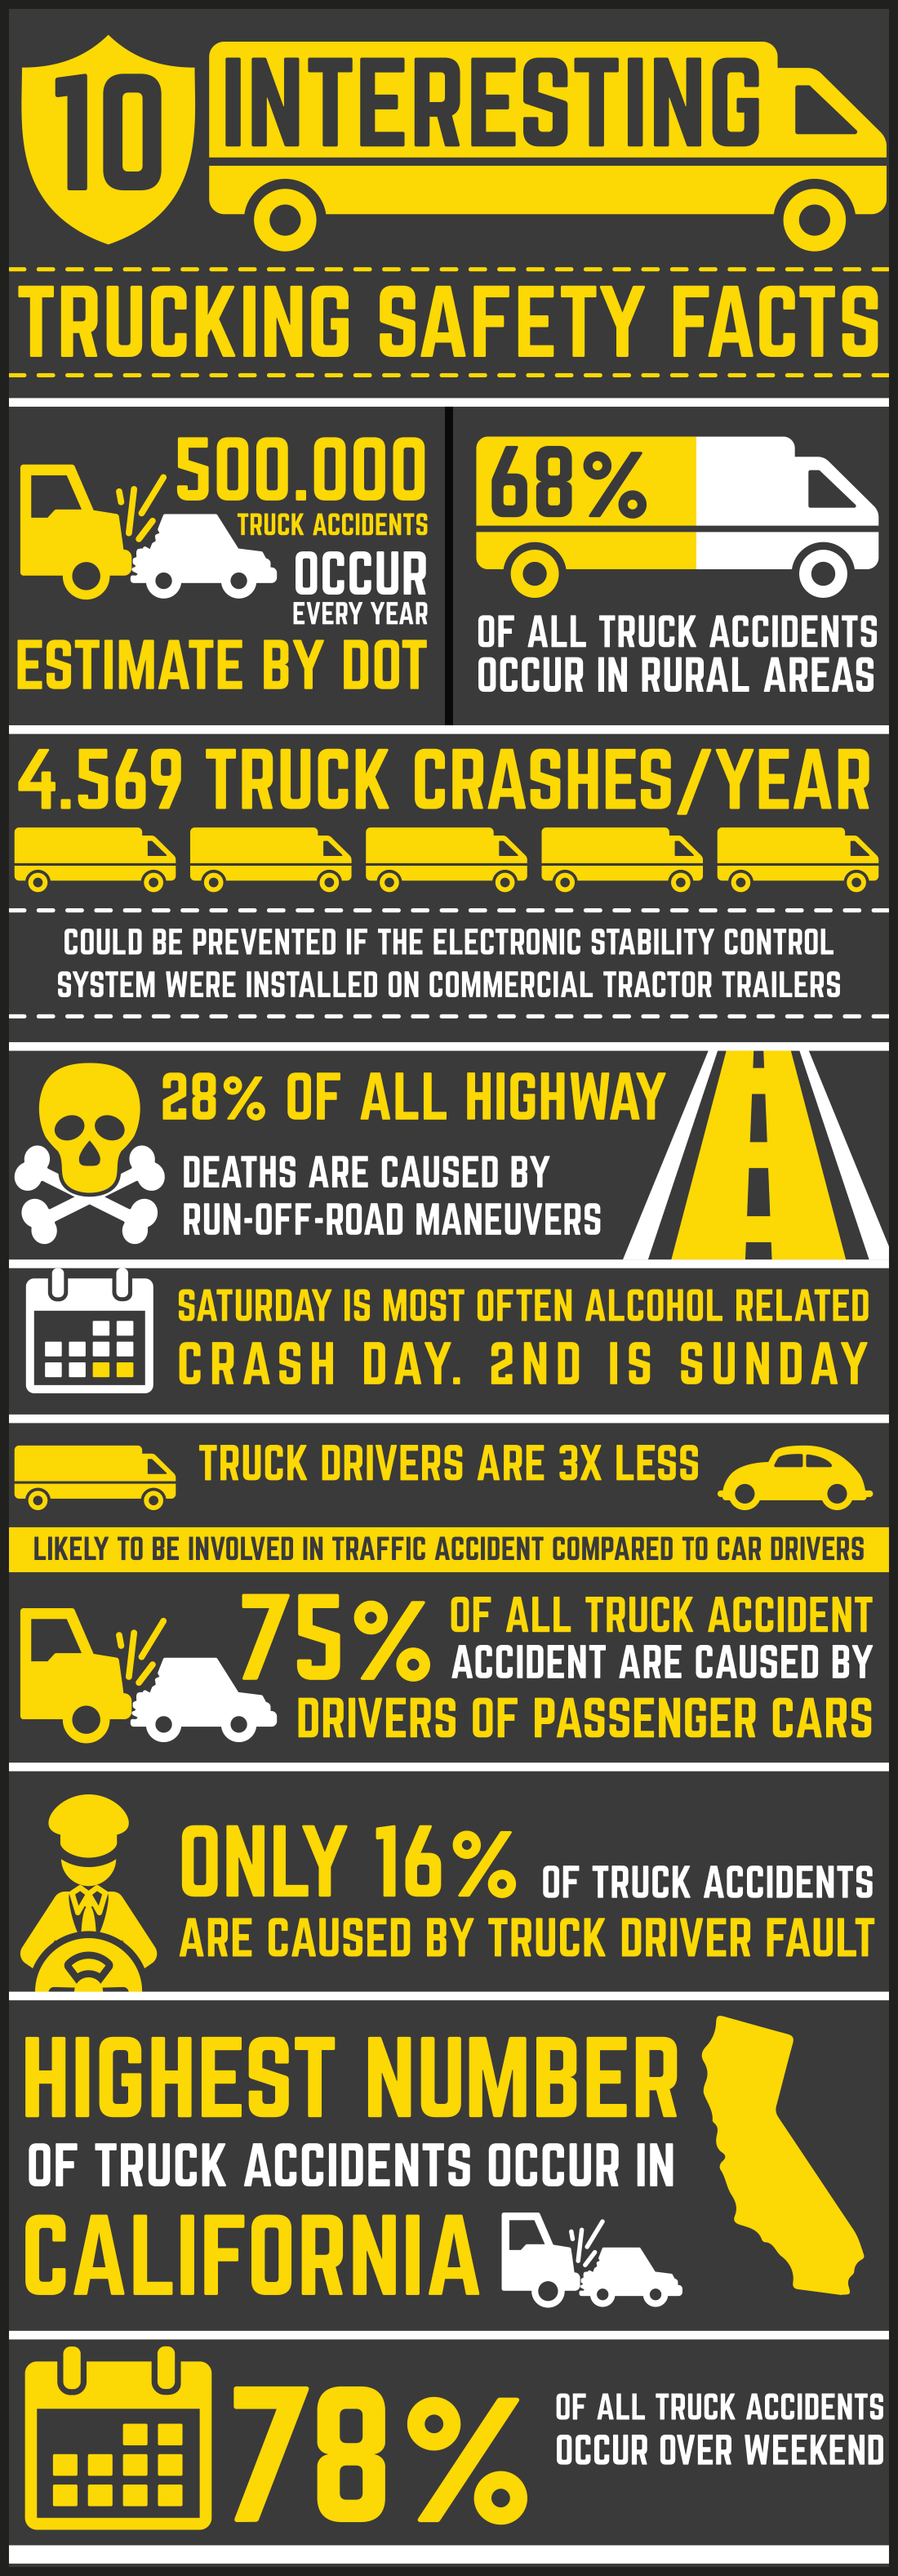 INFOGRAPHIC: 10 Interesting Trucking Safety Facts